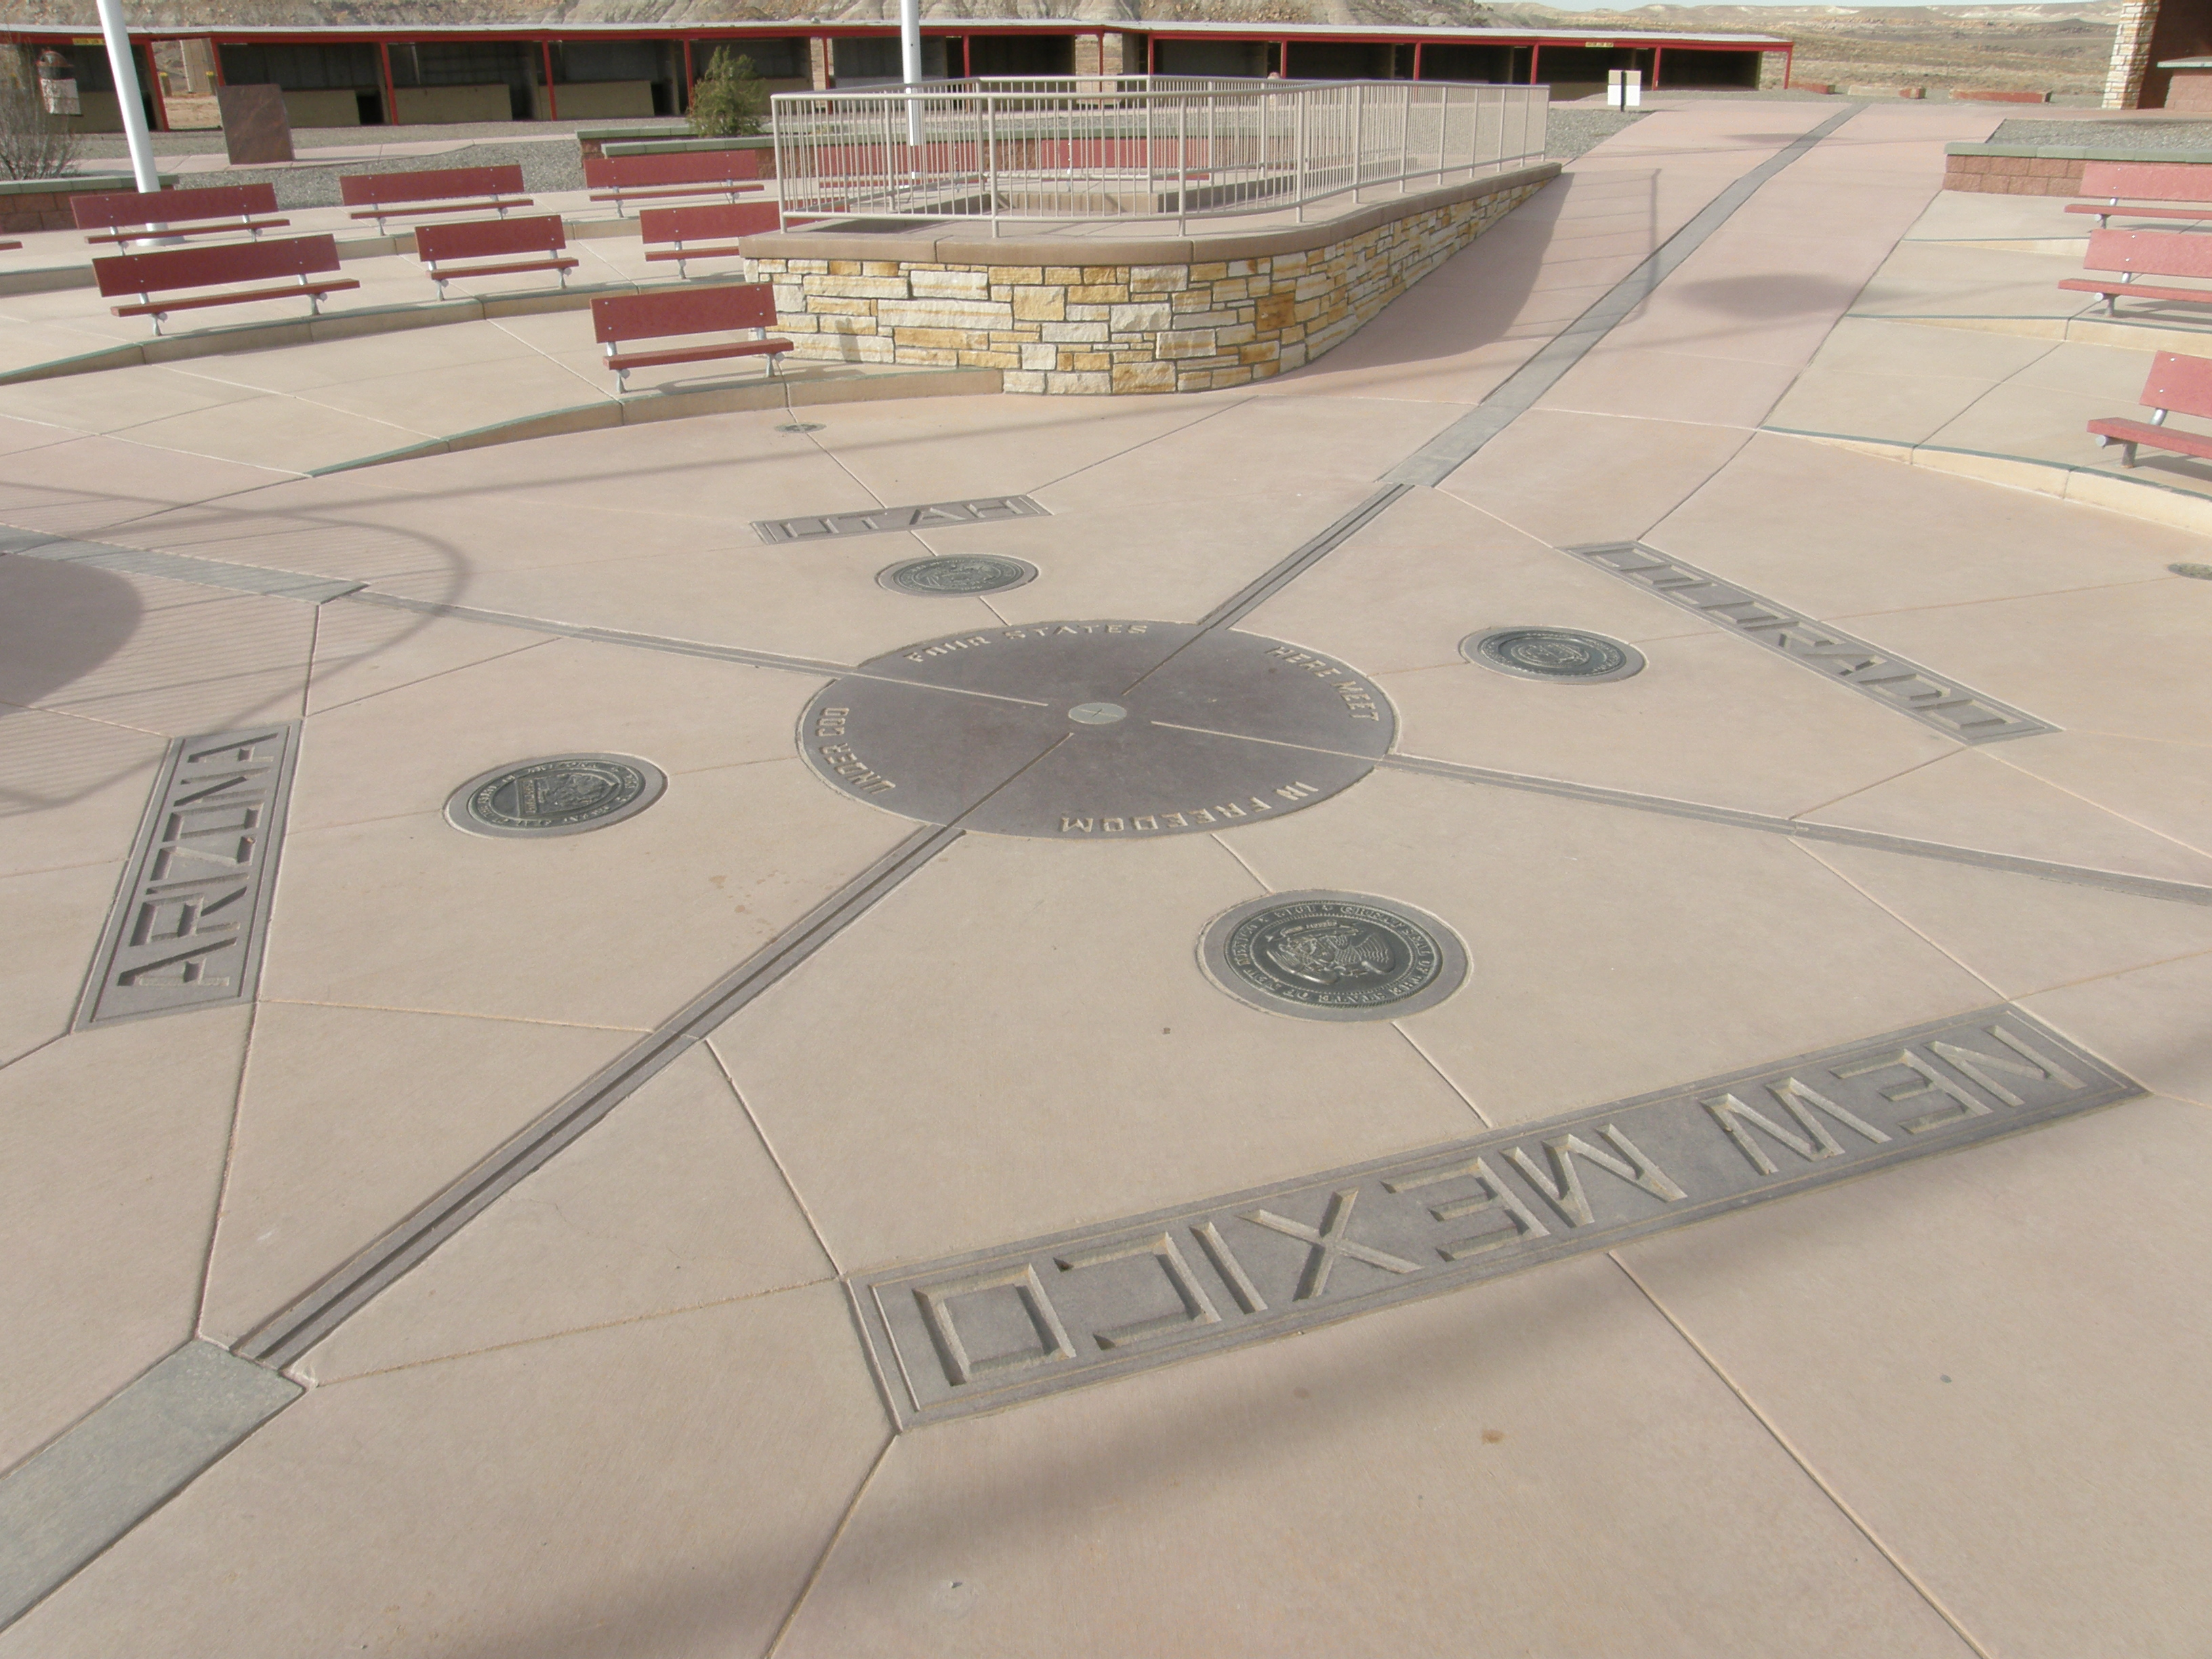 Four Corners Monument - Wikipedia on four corners region, map of arizona and 4 corners, map of west region,